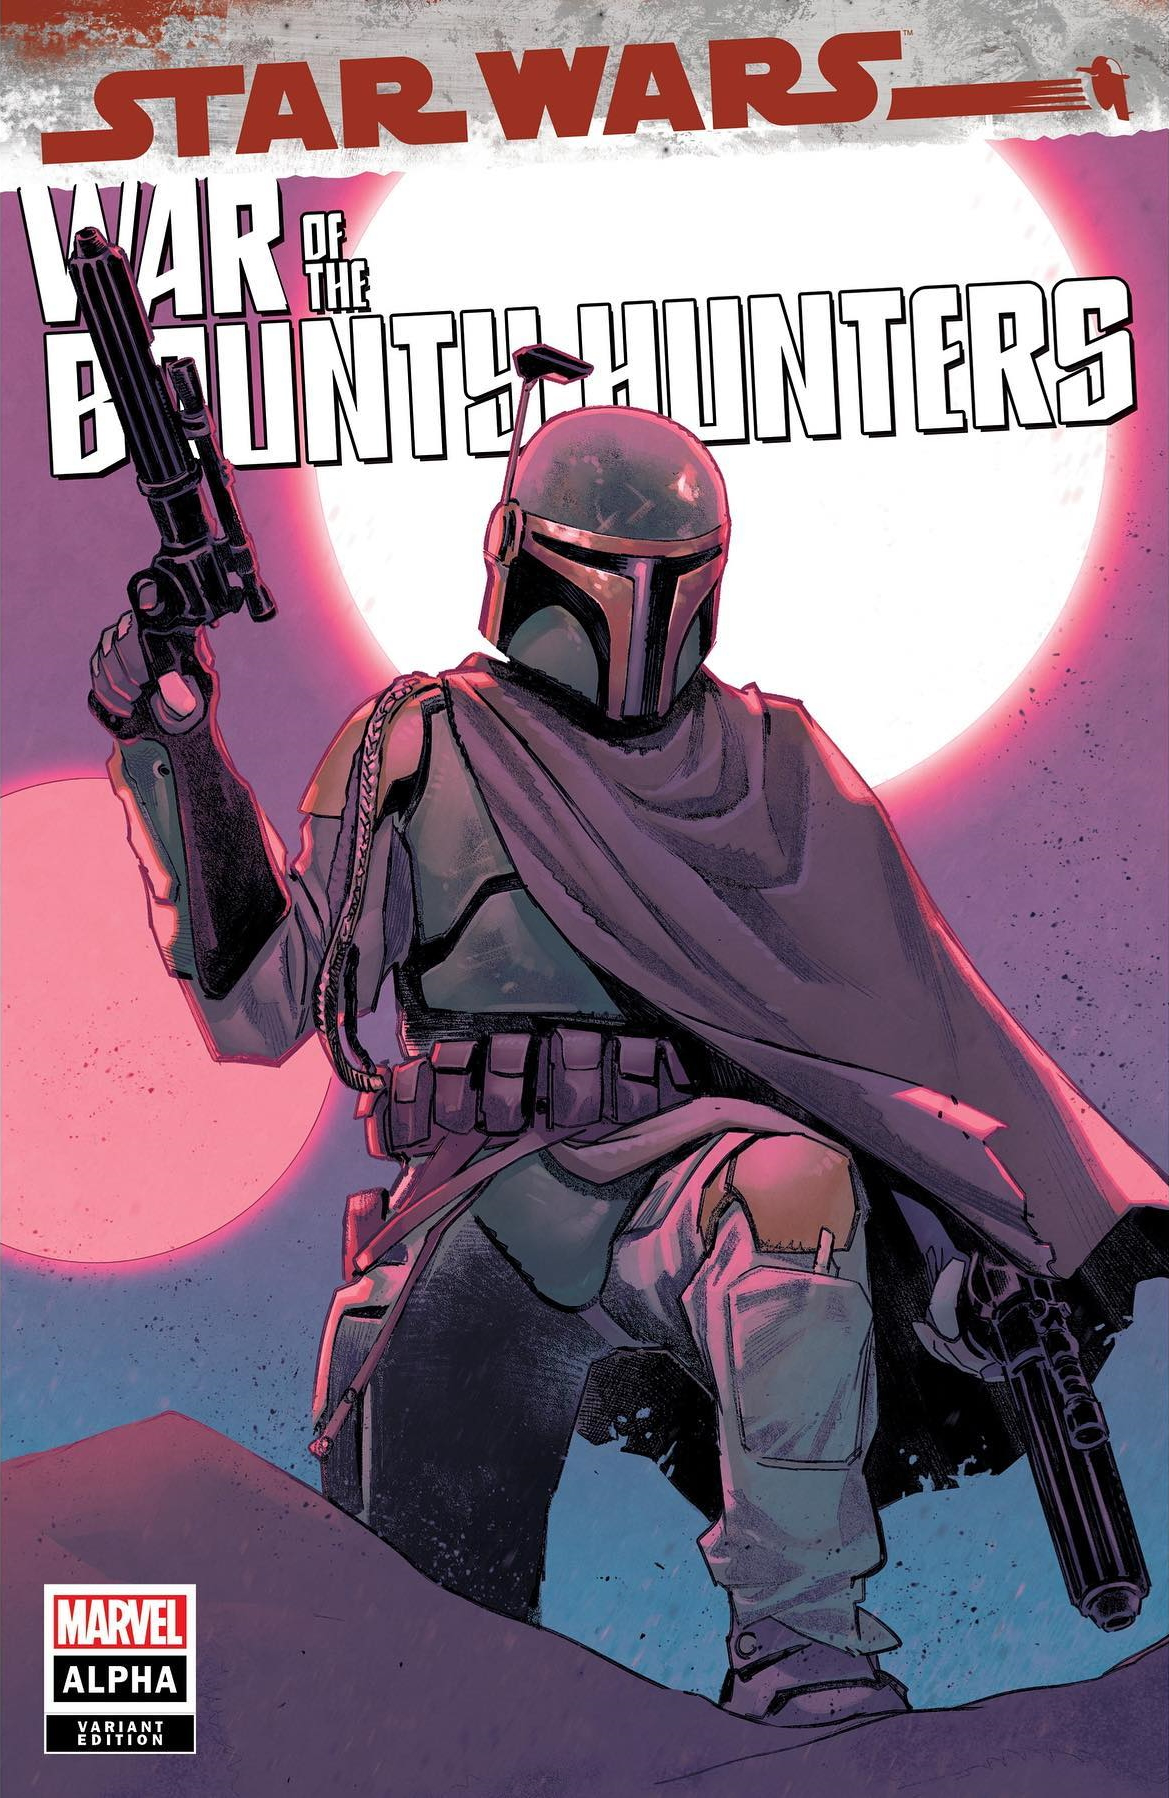 Star Wars: War of the Bounty Hunters Alpha - Scorpion Comics Variant